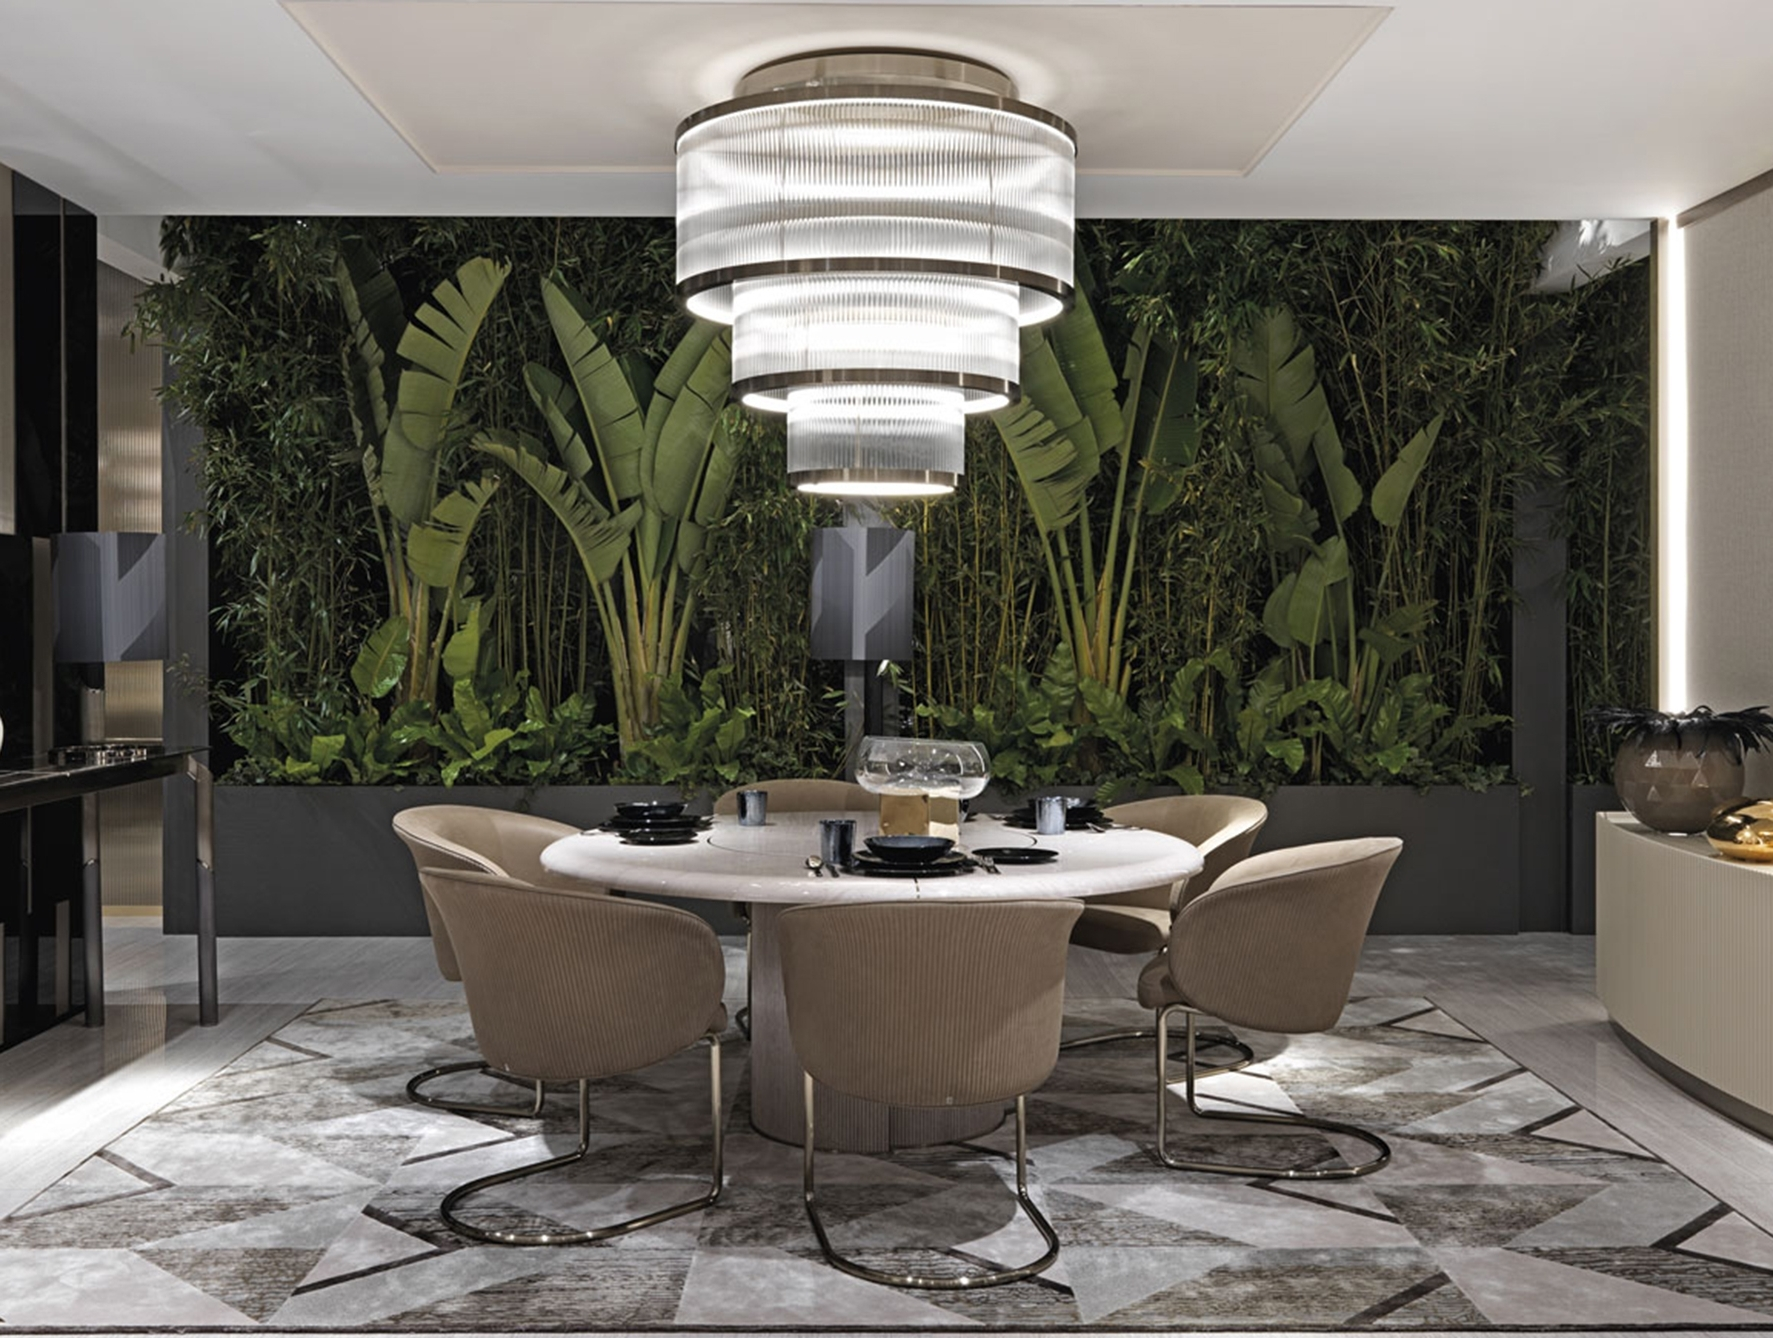 Fashionable Italian Dining Tables Intended For Designer Italian Dining Tables & Luxury High End Dining Tables (View 5 of 25)